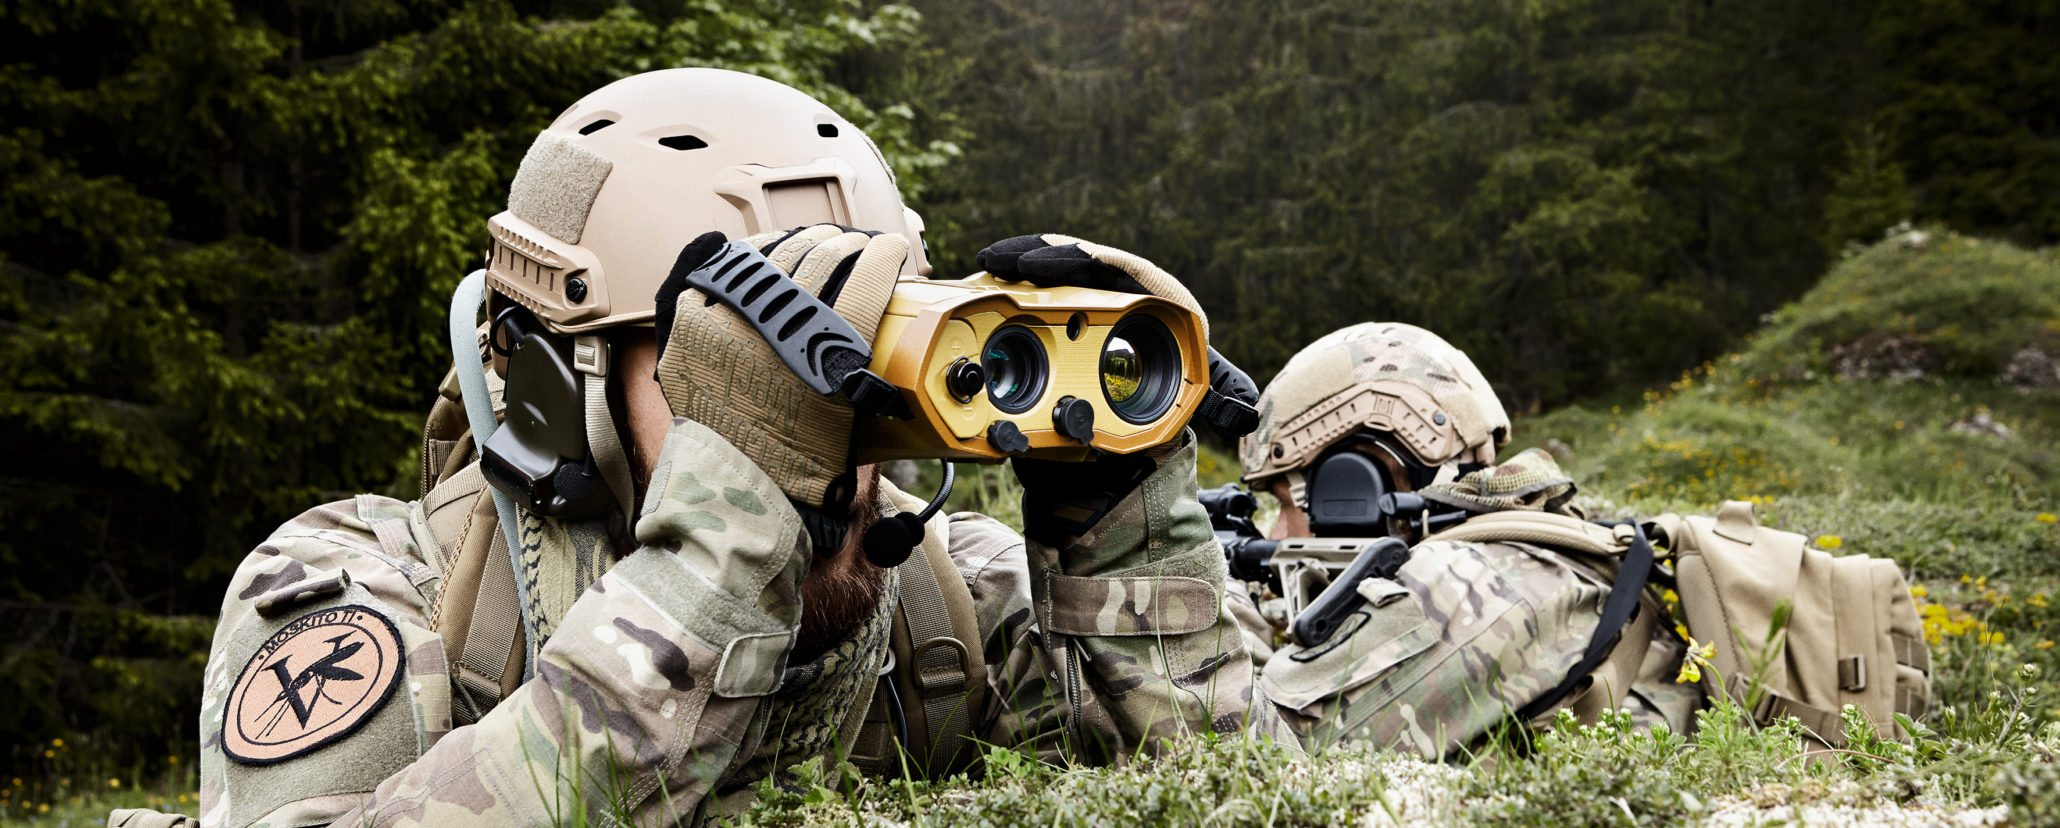 MOSKITO TI lightweight multi-purpose target locator and laser rangefinder